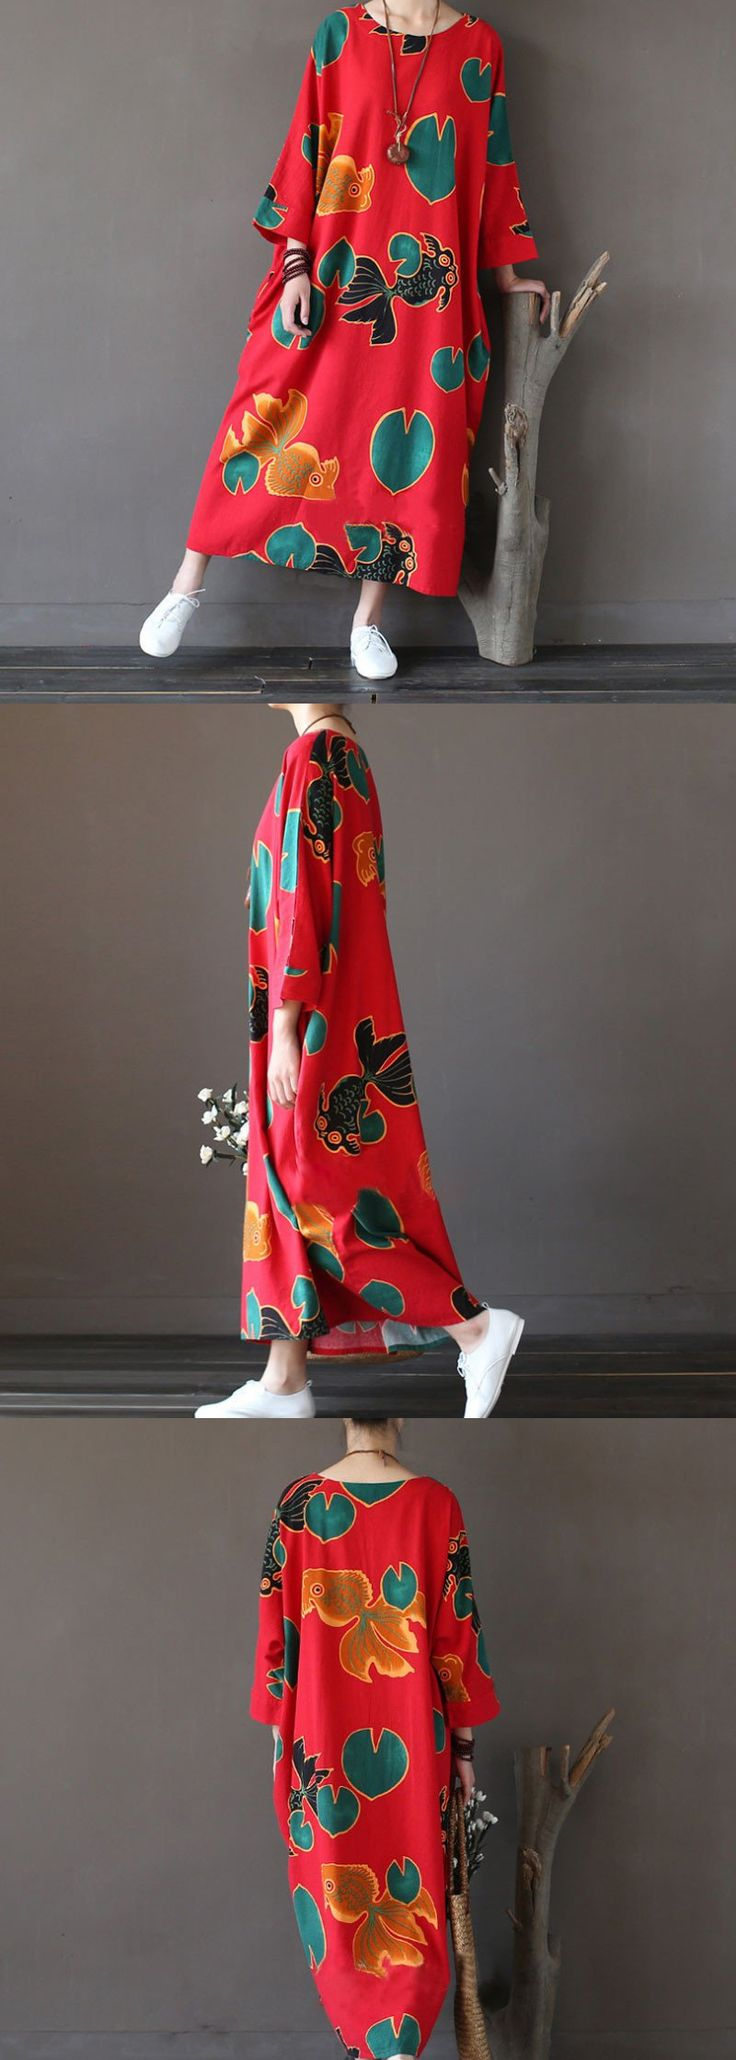 Red Retro Long Sleeved Dress Gown